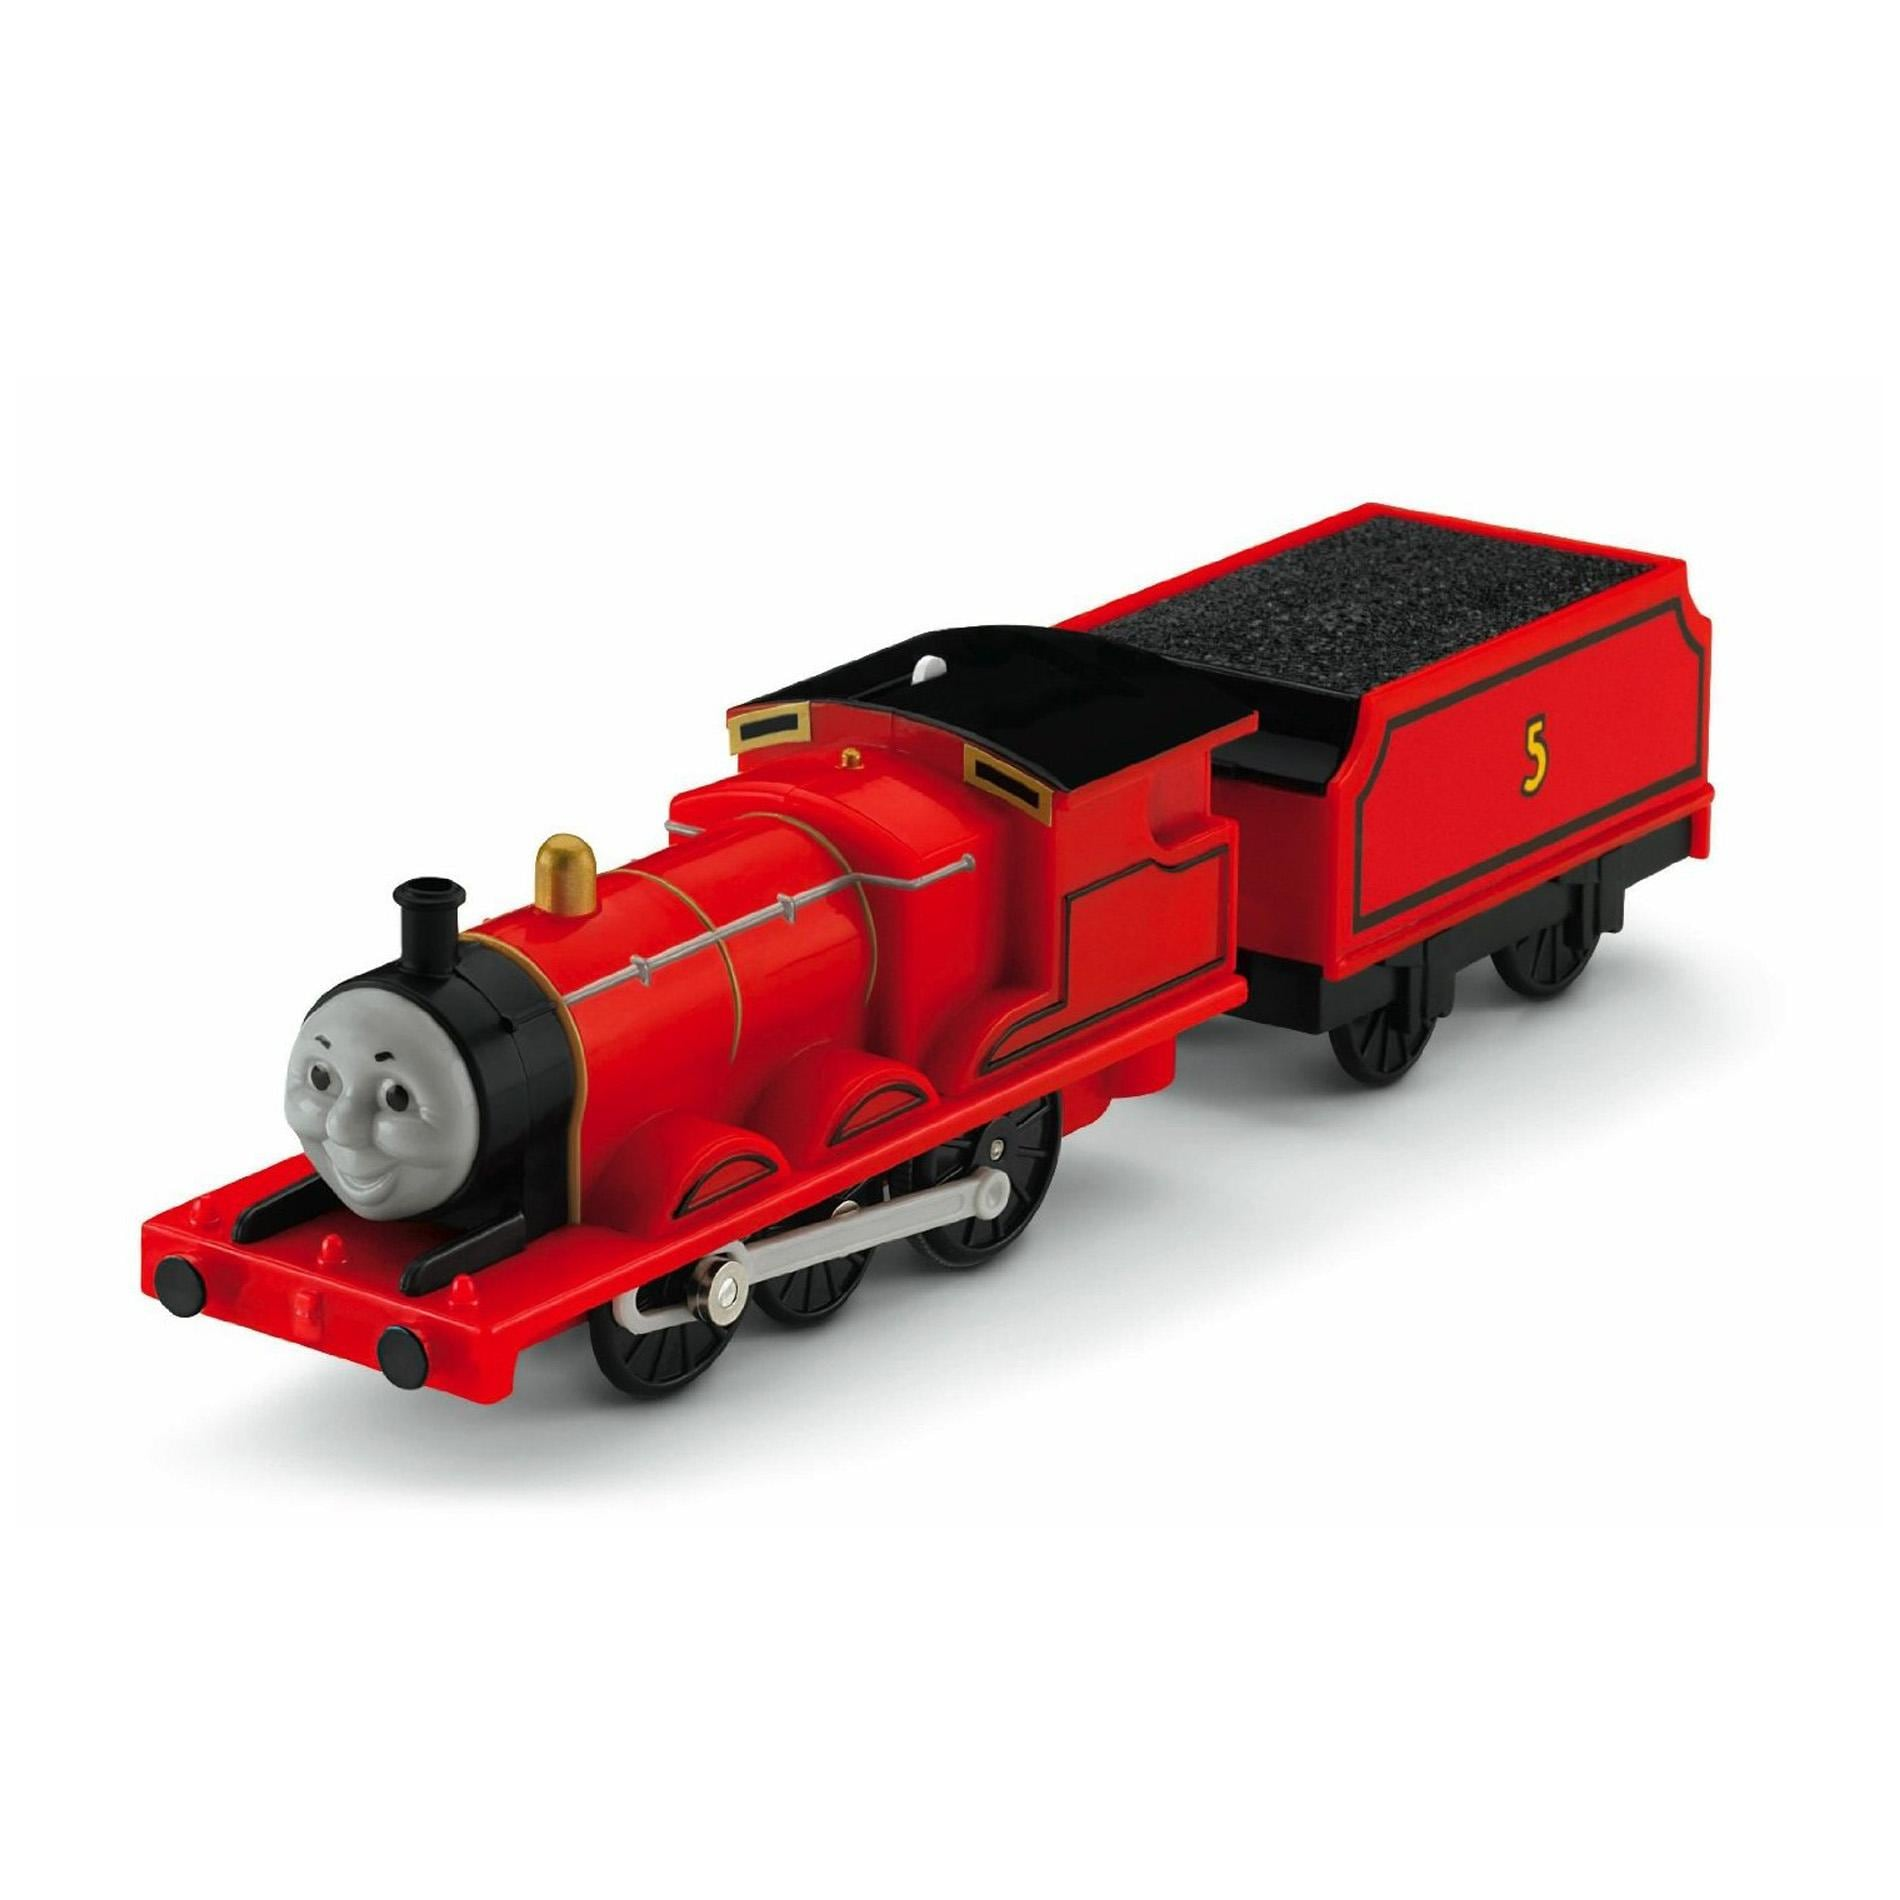 Thomas & Friends Engines Just Got a MINIS Makeover! 20 Pack of Thomas & Friends MINIS Engines With over 80 engines to collect, Thomas & Friends MINIS from Fisher-Price completely reimagine the Island of Sodor with never-before-seen themes!Reviews: